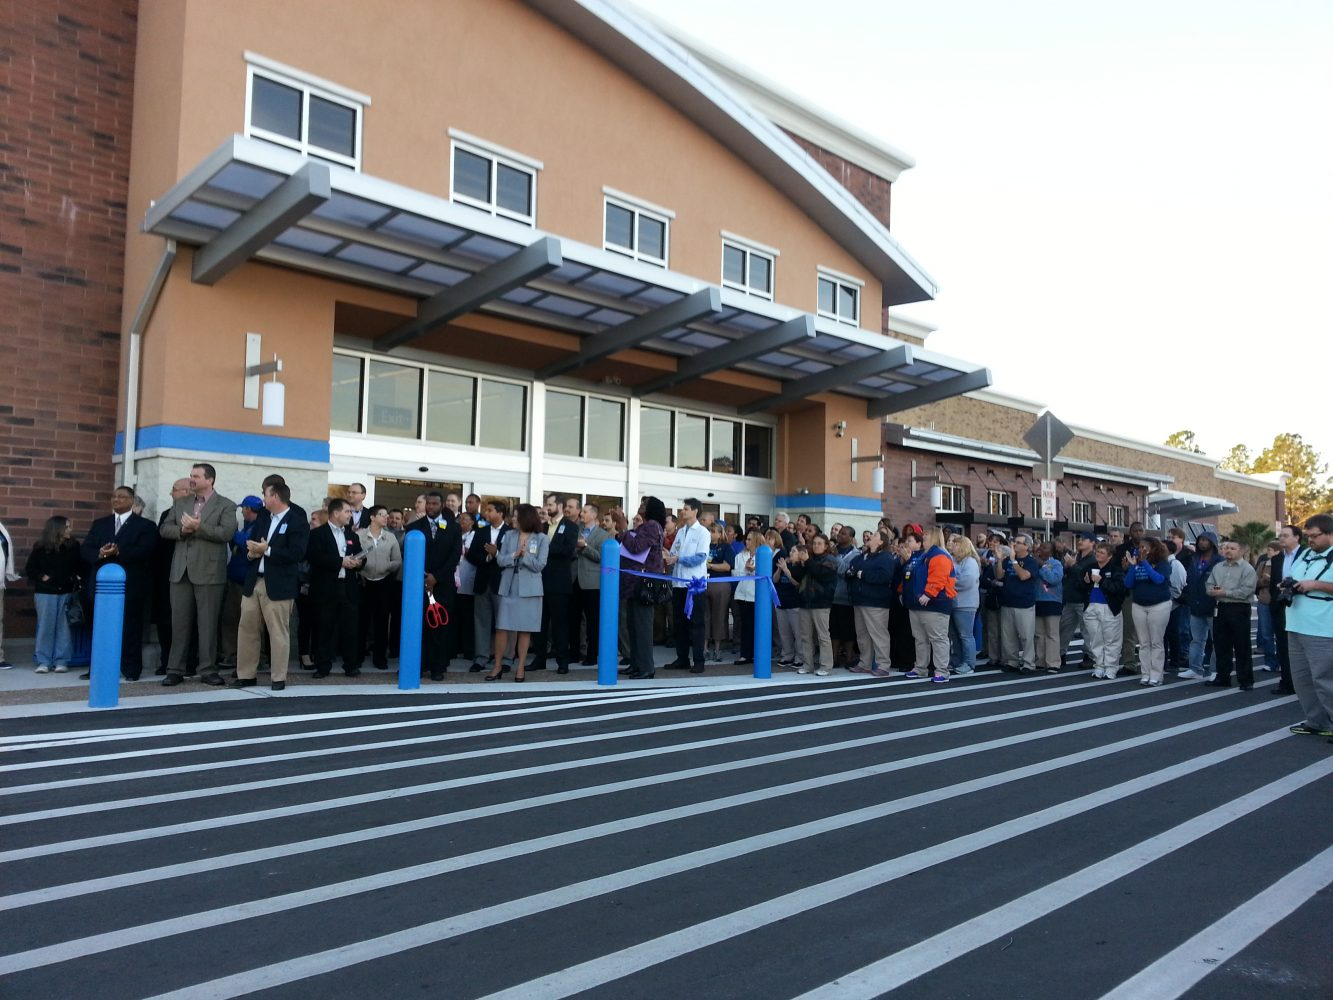 Customers and employees stand outside of Wal-Mart awaiting the 8 a.m. grand opening.